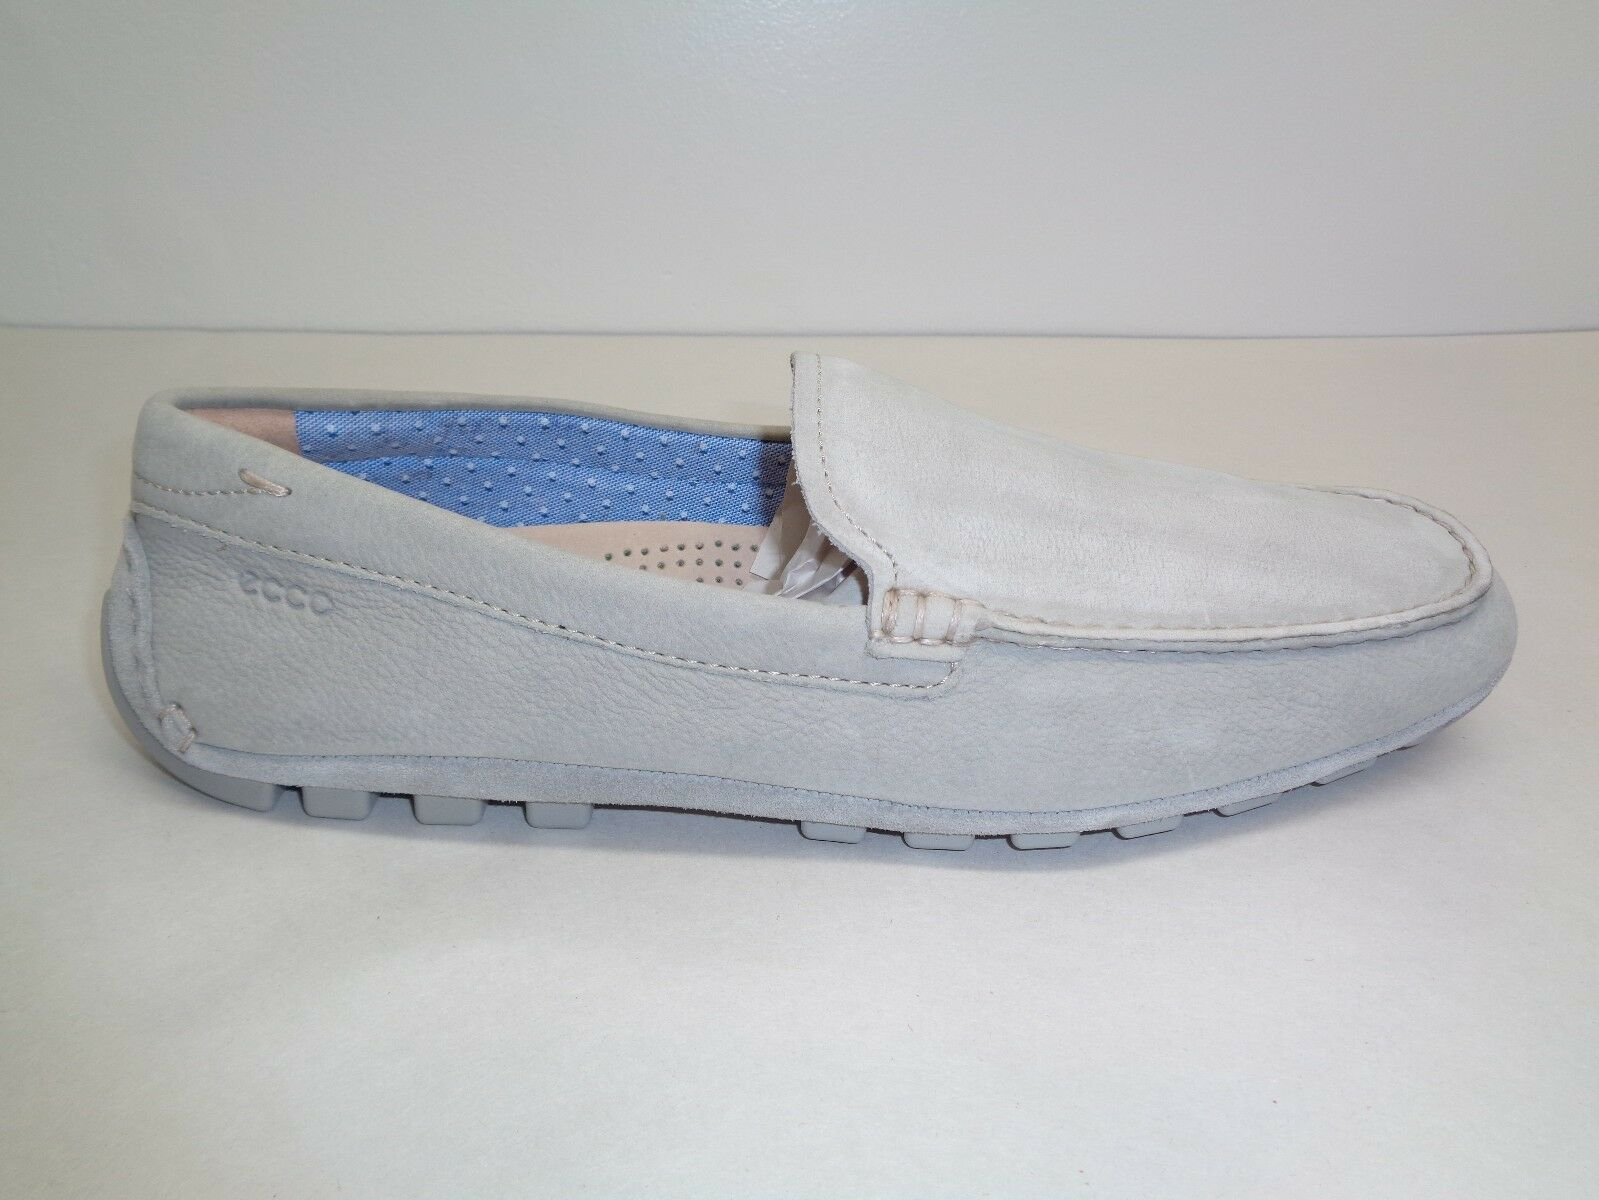 Ecco Size 9 to 9.5 SUMMER MOC Wild Loafers Dove Leather Slip On Loafers Wild New Uomo Shoes f74954